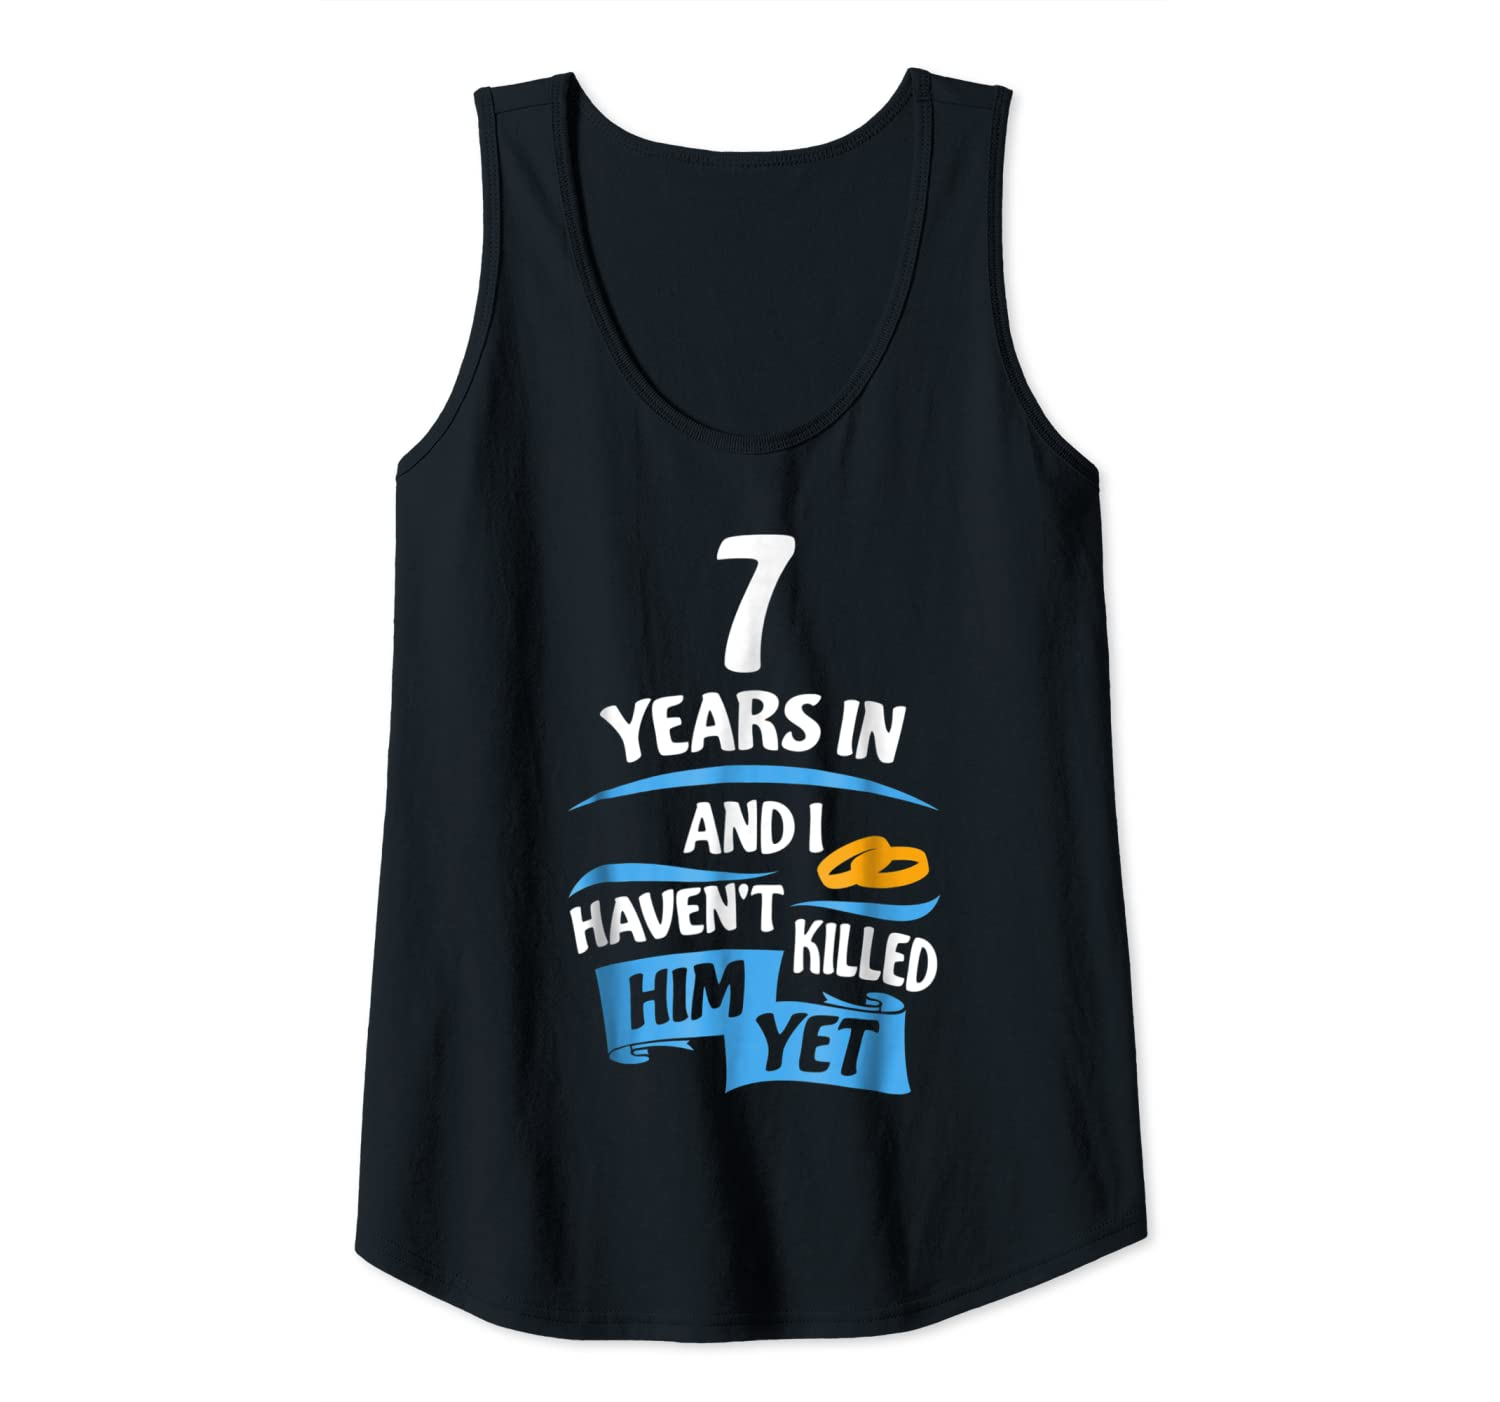 7th Wedding Anniversary Gift Ideas For Her: 7 Years Anniversary Gift Idea For Her